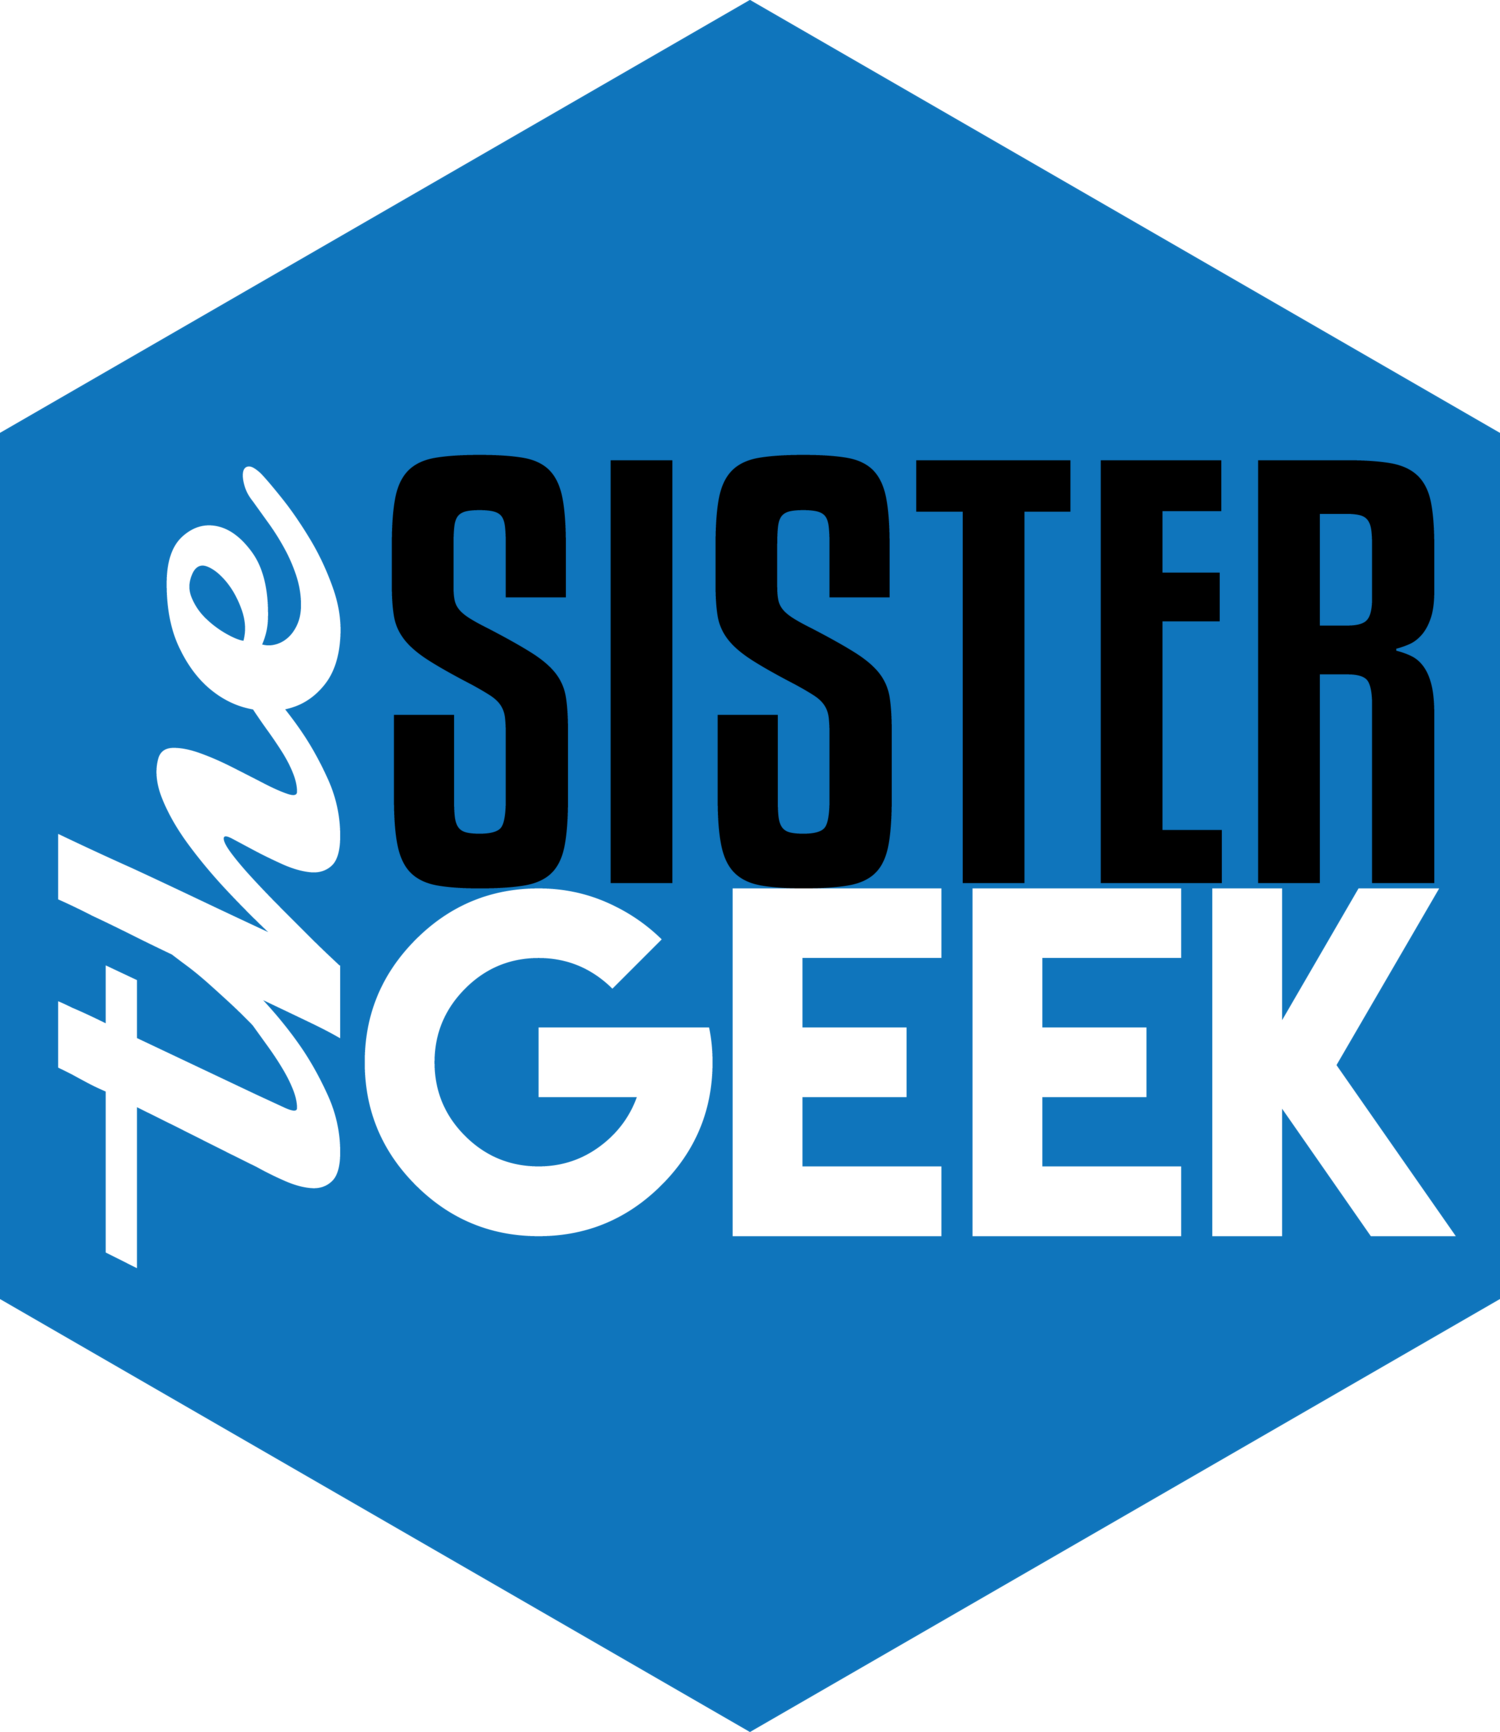 theSisterGeek Consulting